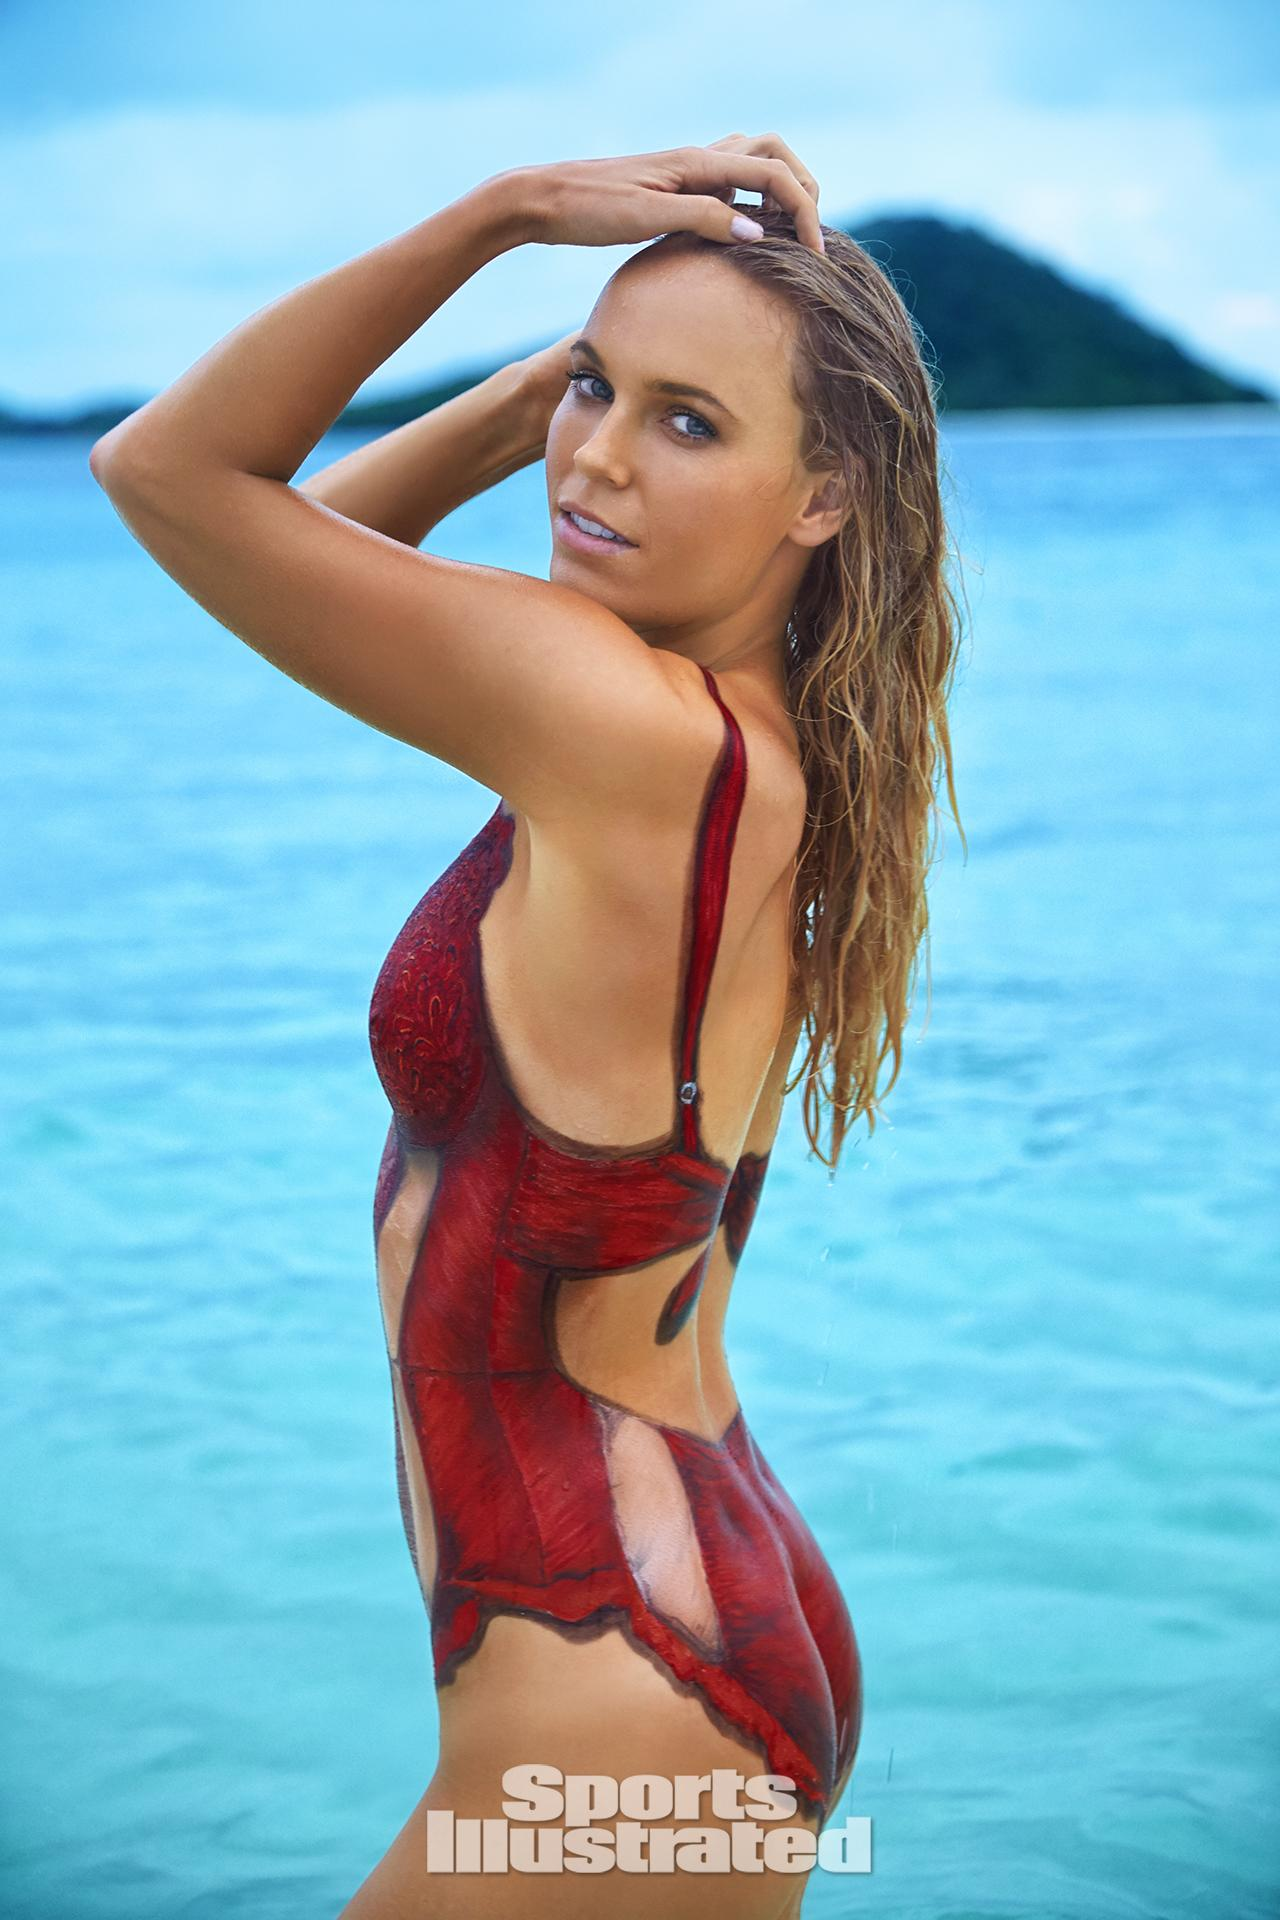 The Top 20 Hottest Women From The 2016 Sports Illustrated Swimsuit Issue Part 1